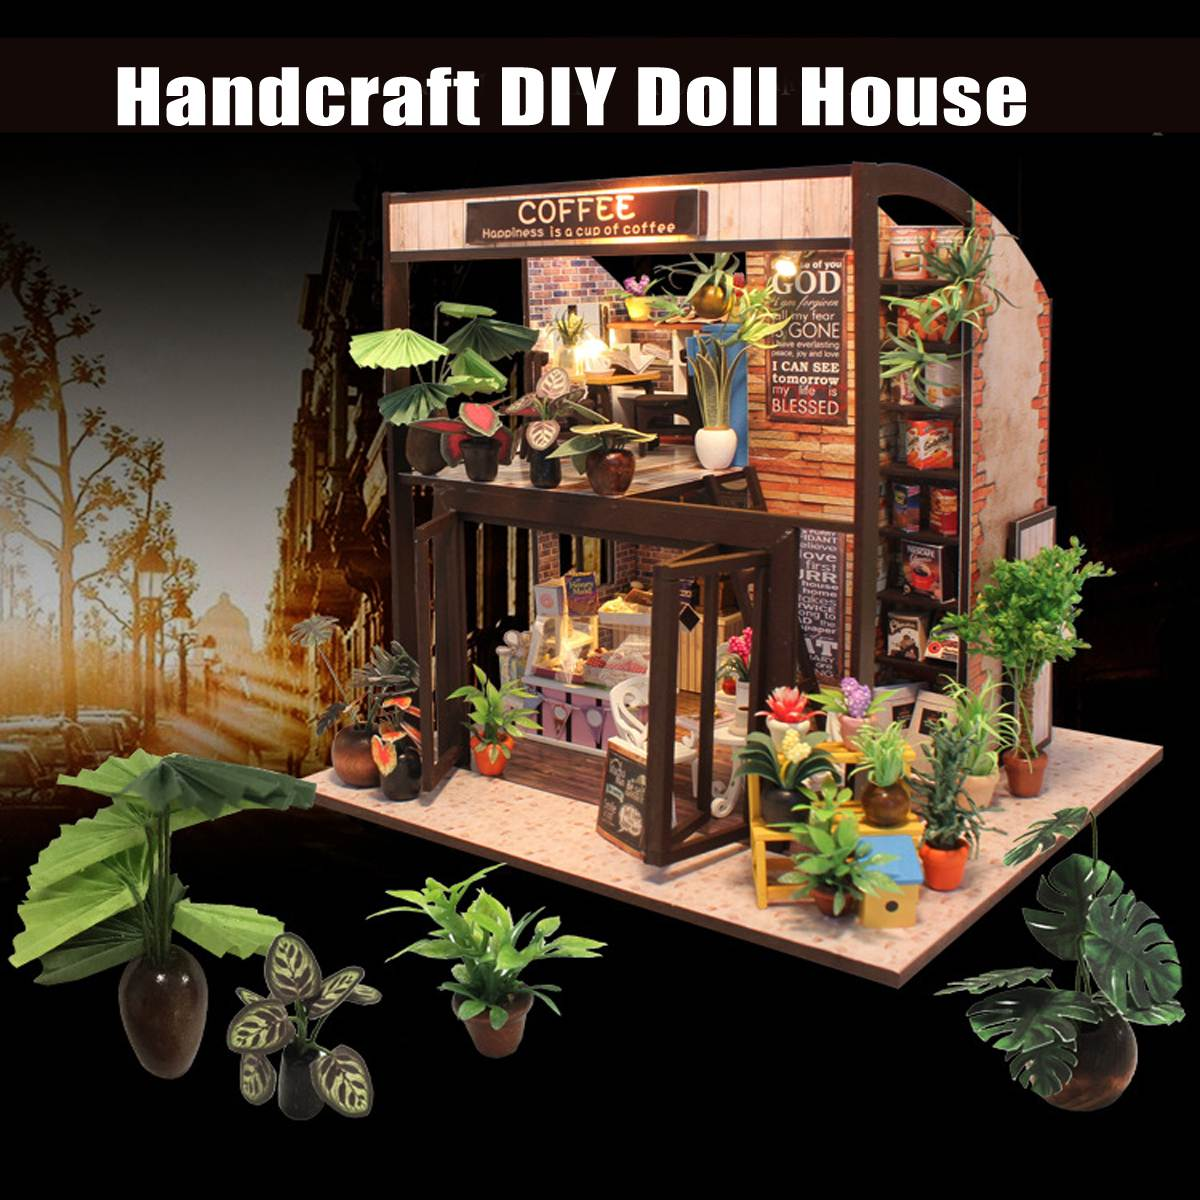 Handcraft DIY Doll House Time Cafe Toy Wooden Miniature Furniture LED Light Gift High Quality diy wooden handcraft miniature provence dollhouse voice activated led light